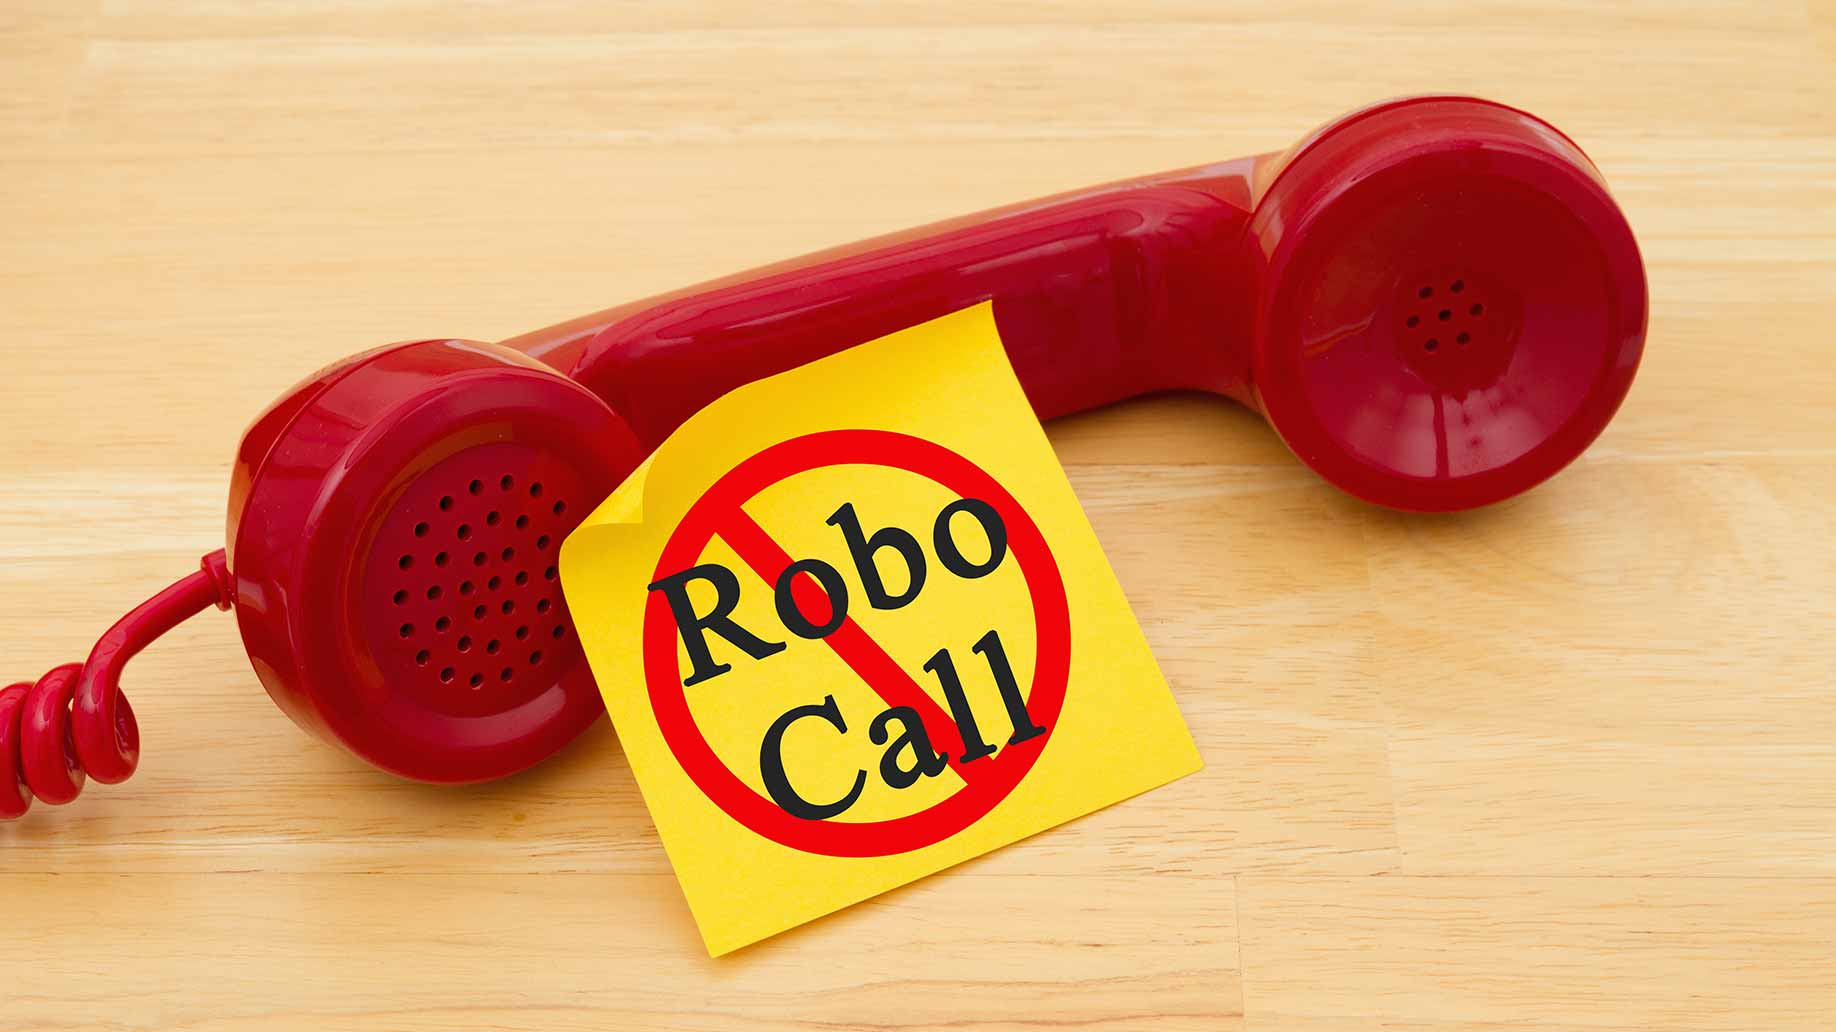 red phone with yellow post-it note displaying no robocall image